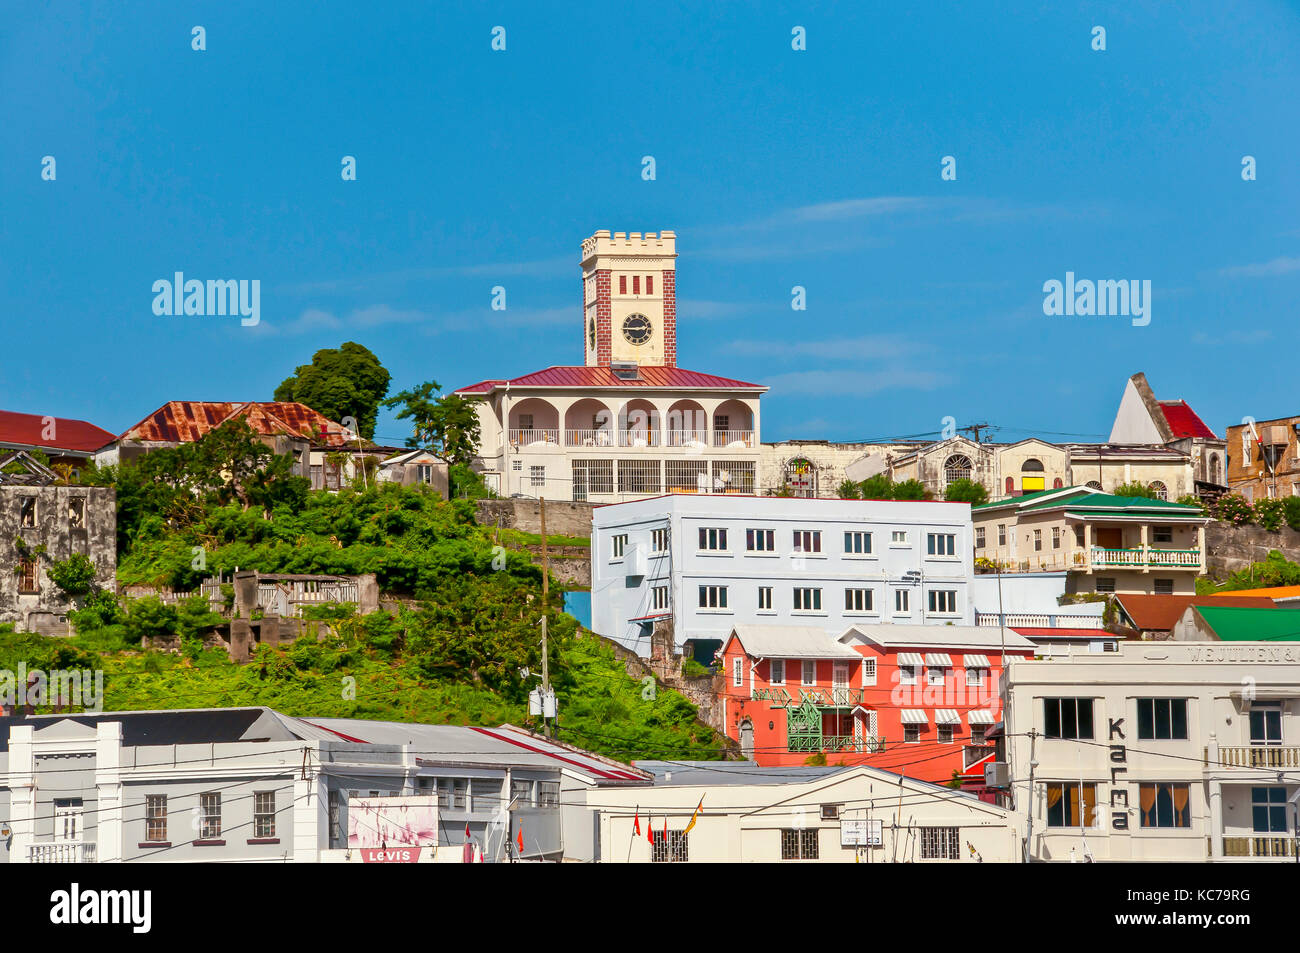 Buildings of St. George's Grenada built on the side of an old vocano, Grenada and Grenadines - Stock Image